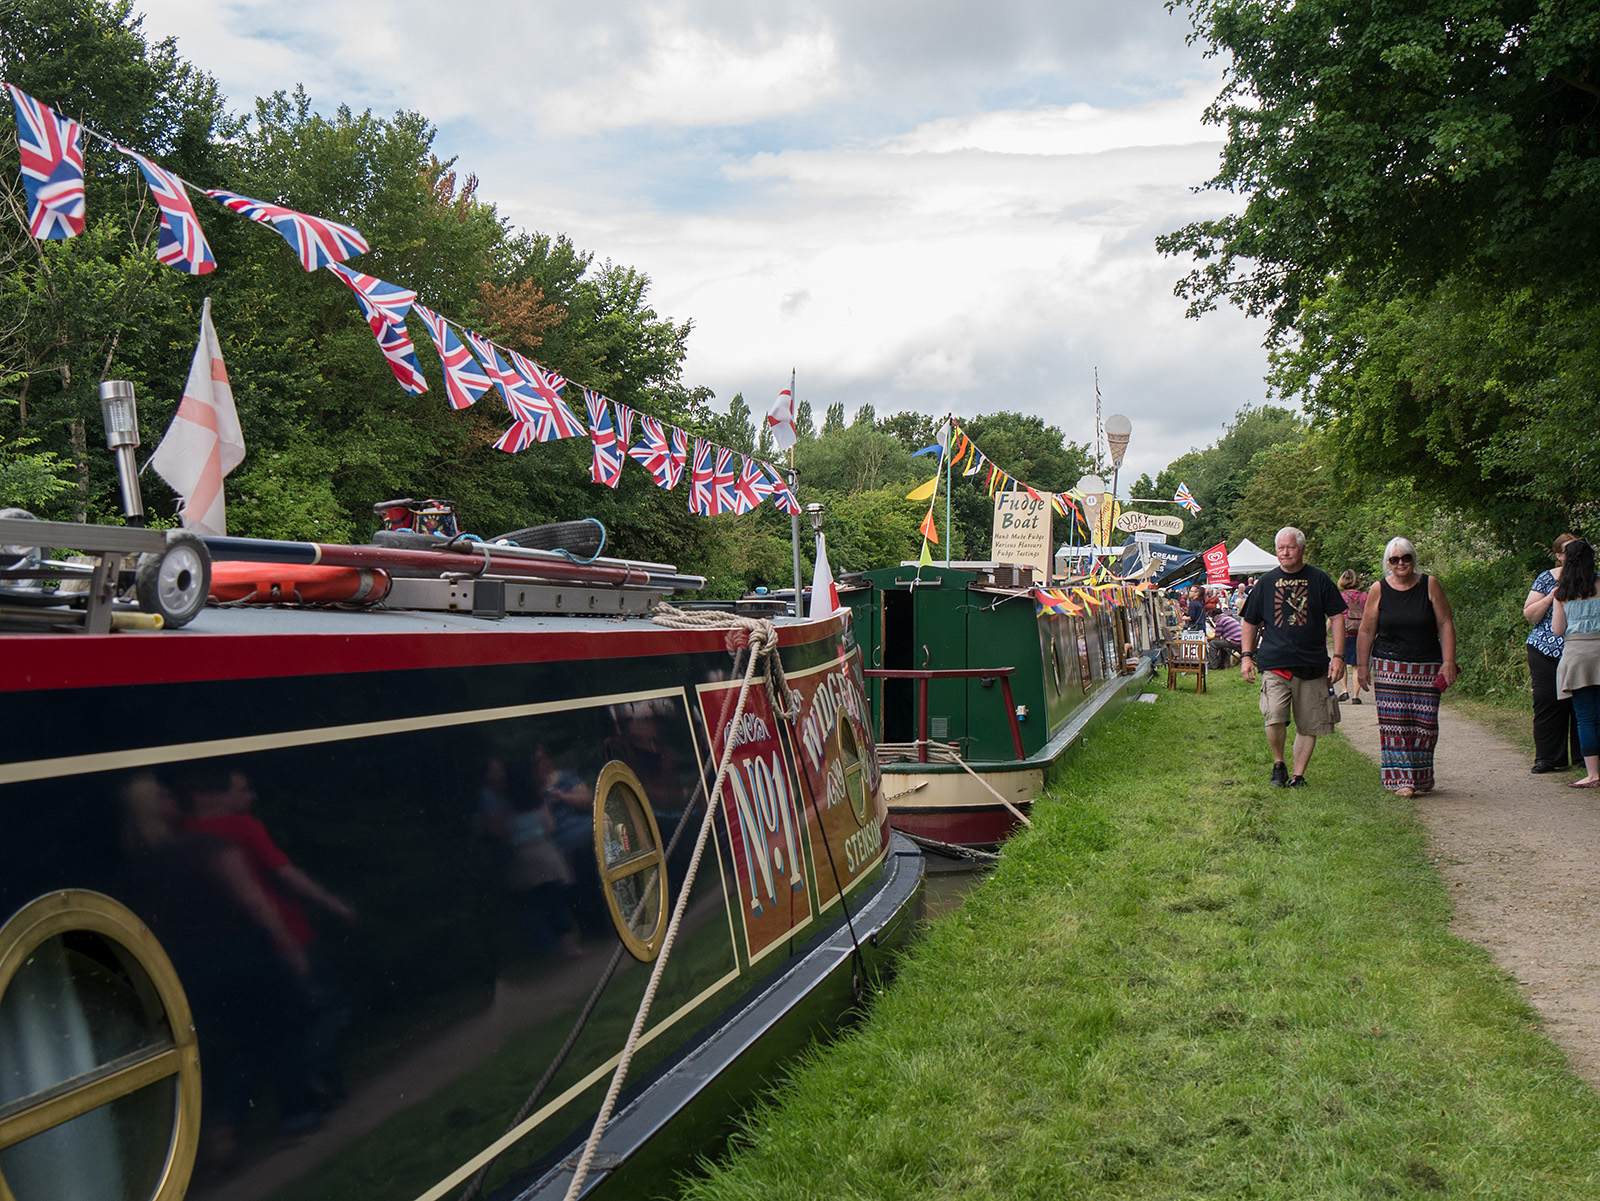 Cosgrove canal festival in full swing